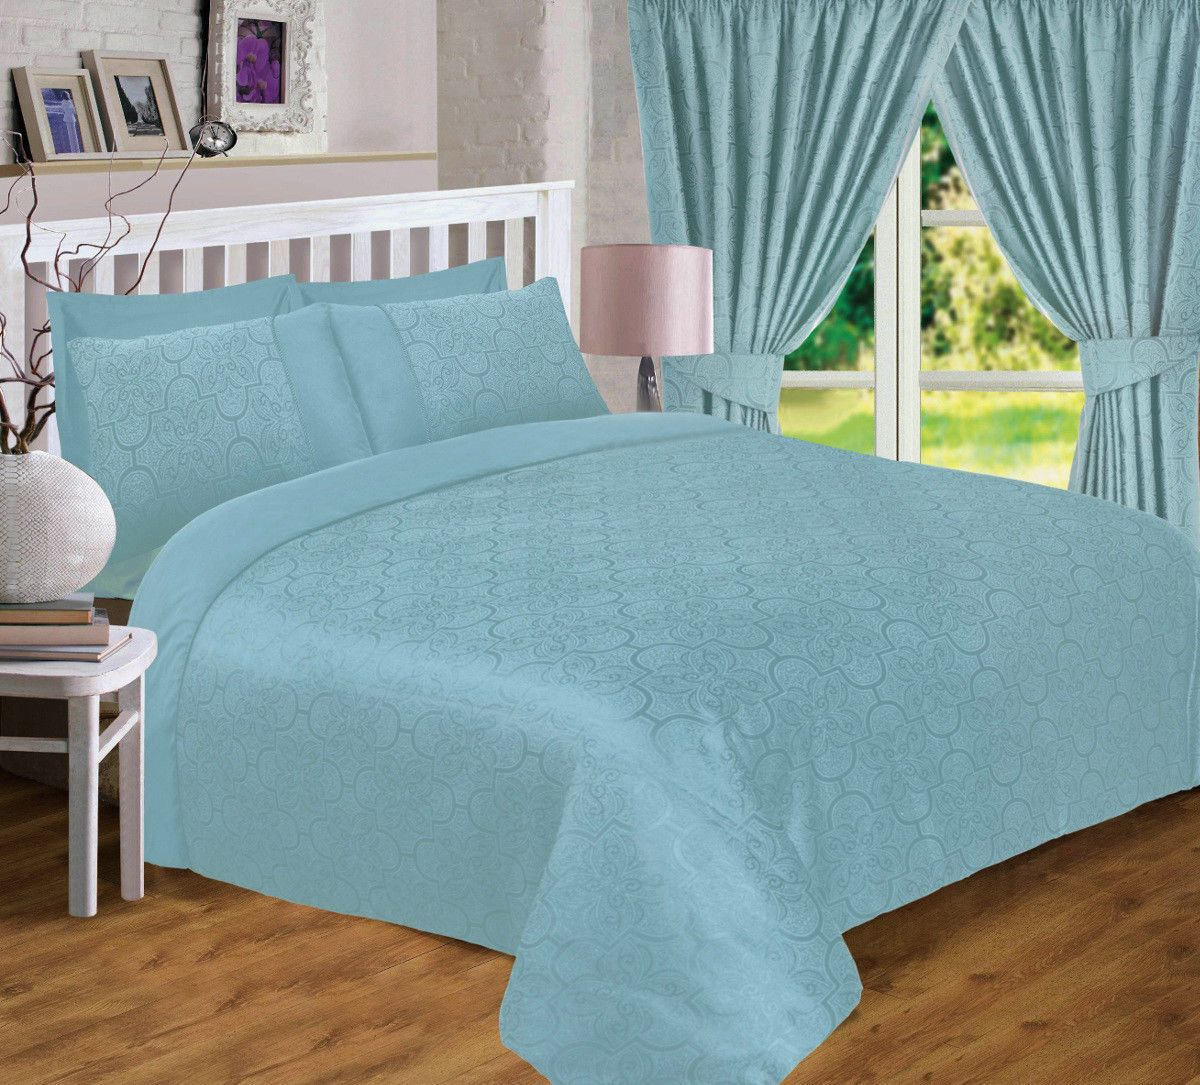 Duck Egg Blue Jacquard Scroll Floral Duvet Quilt Cover Luxury Bedding Or Curtains